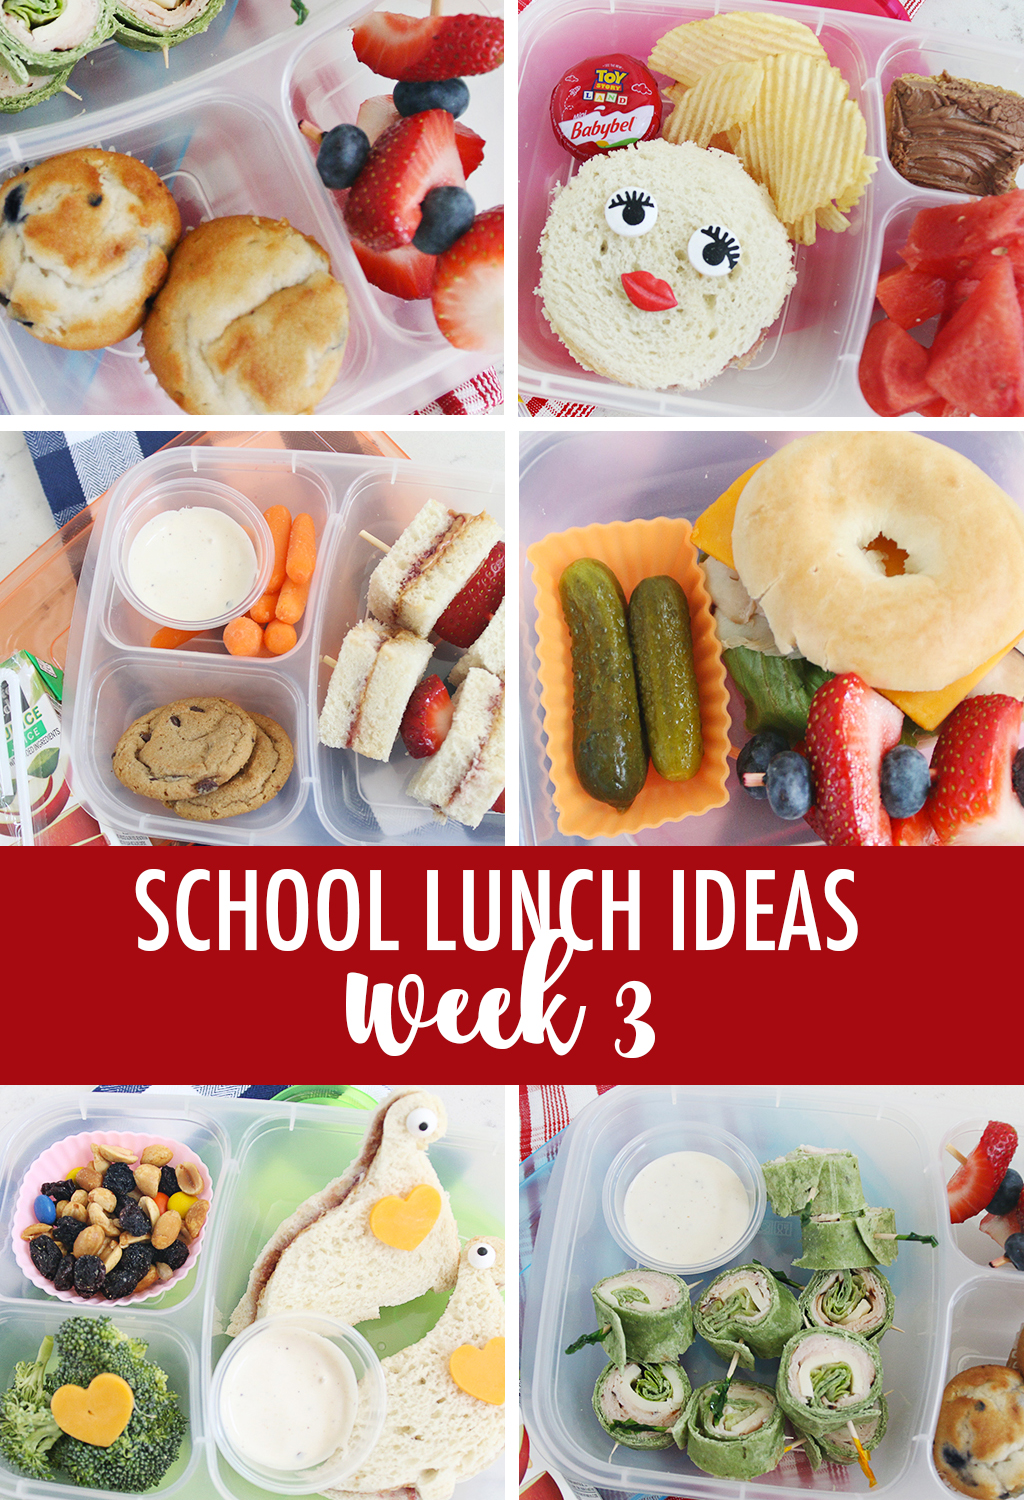 Lunch Ideas for School Week 3